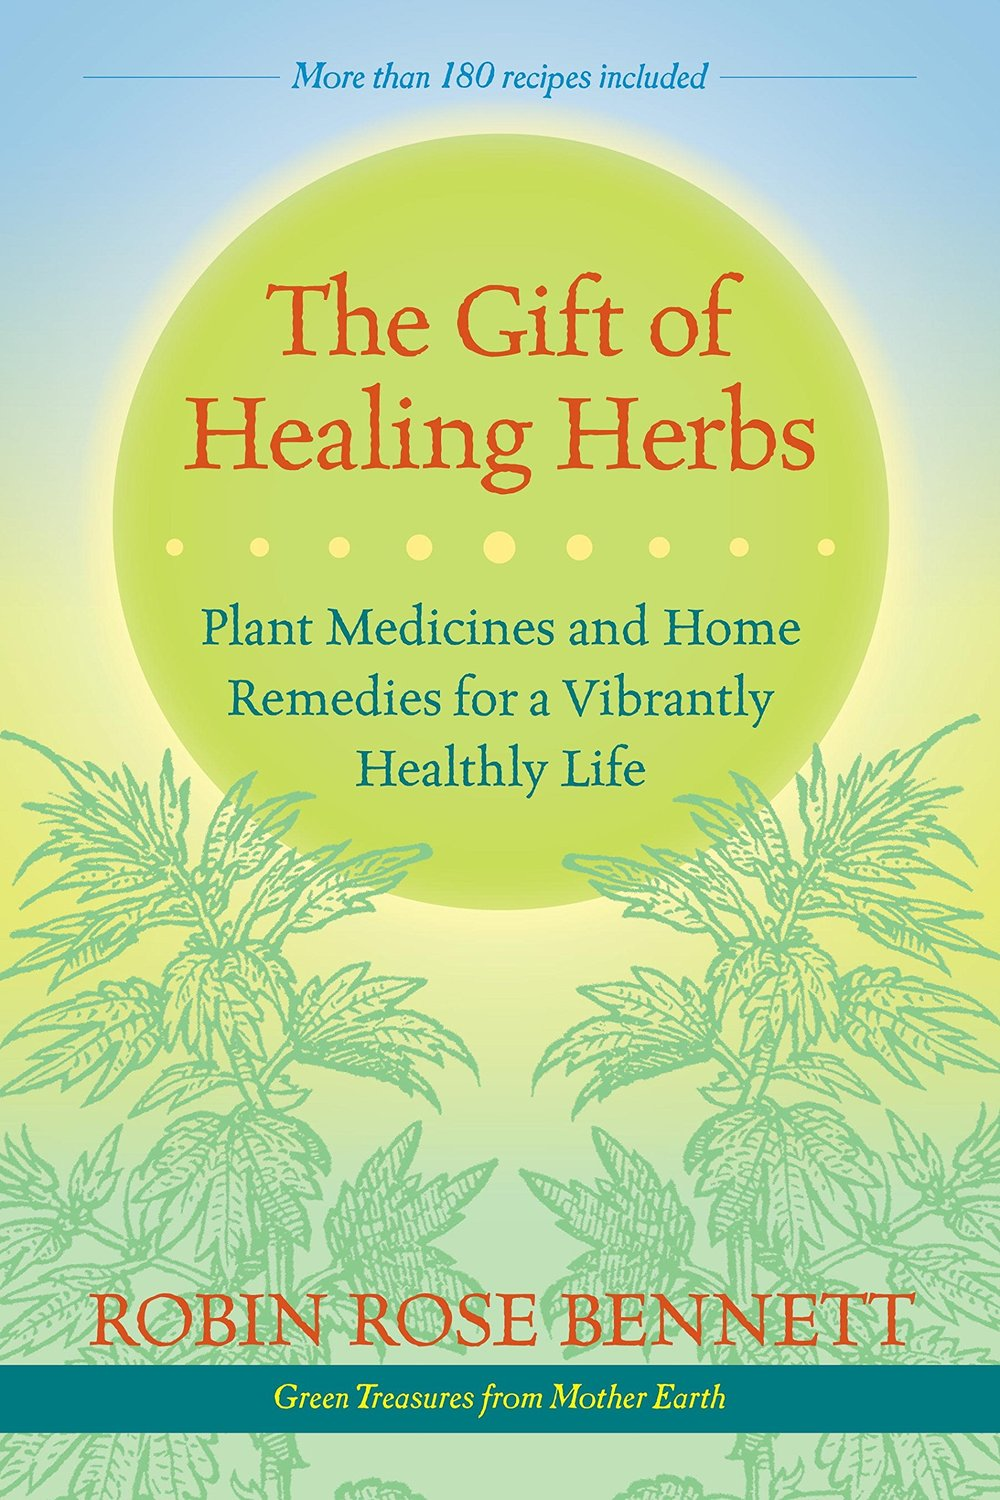 the gift of healing herbs bennett.jpg